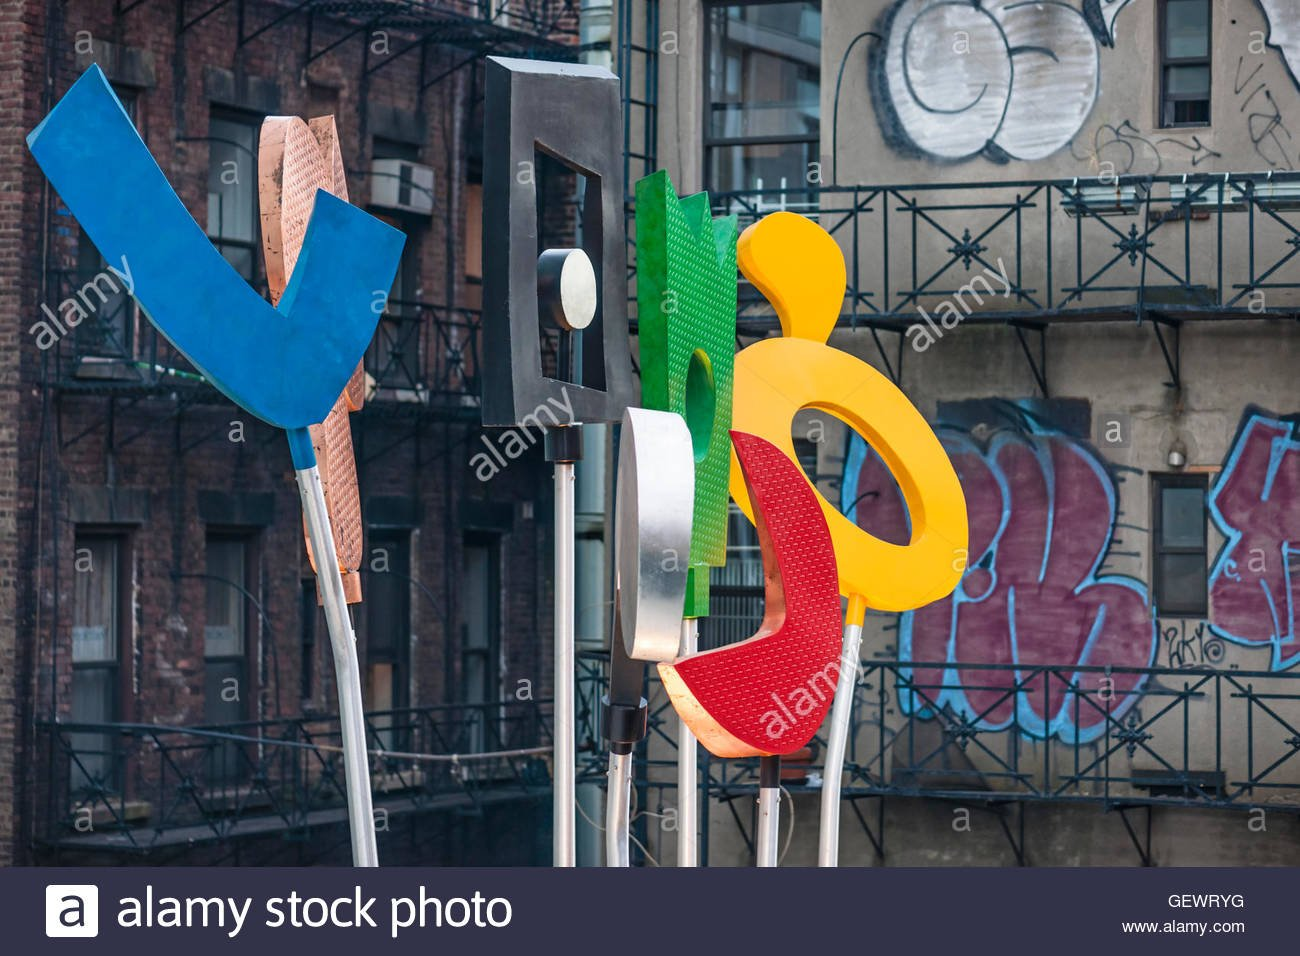 Detail of colourful sculptural building sign with graffiti in 1300x956